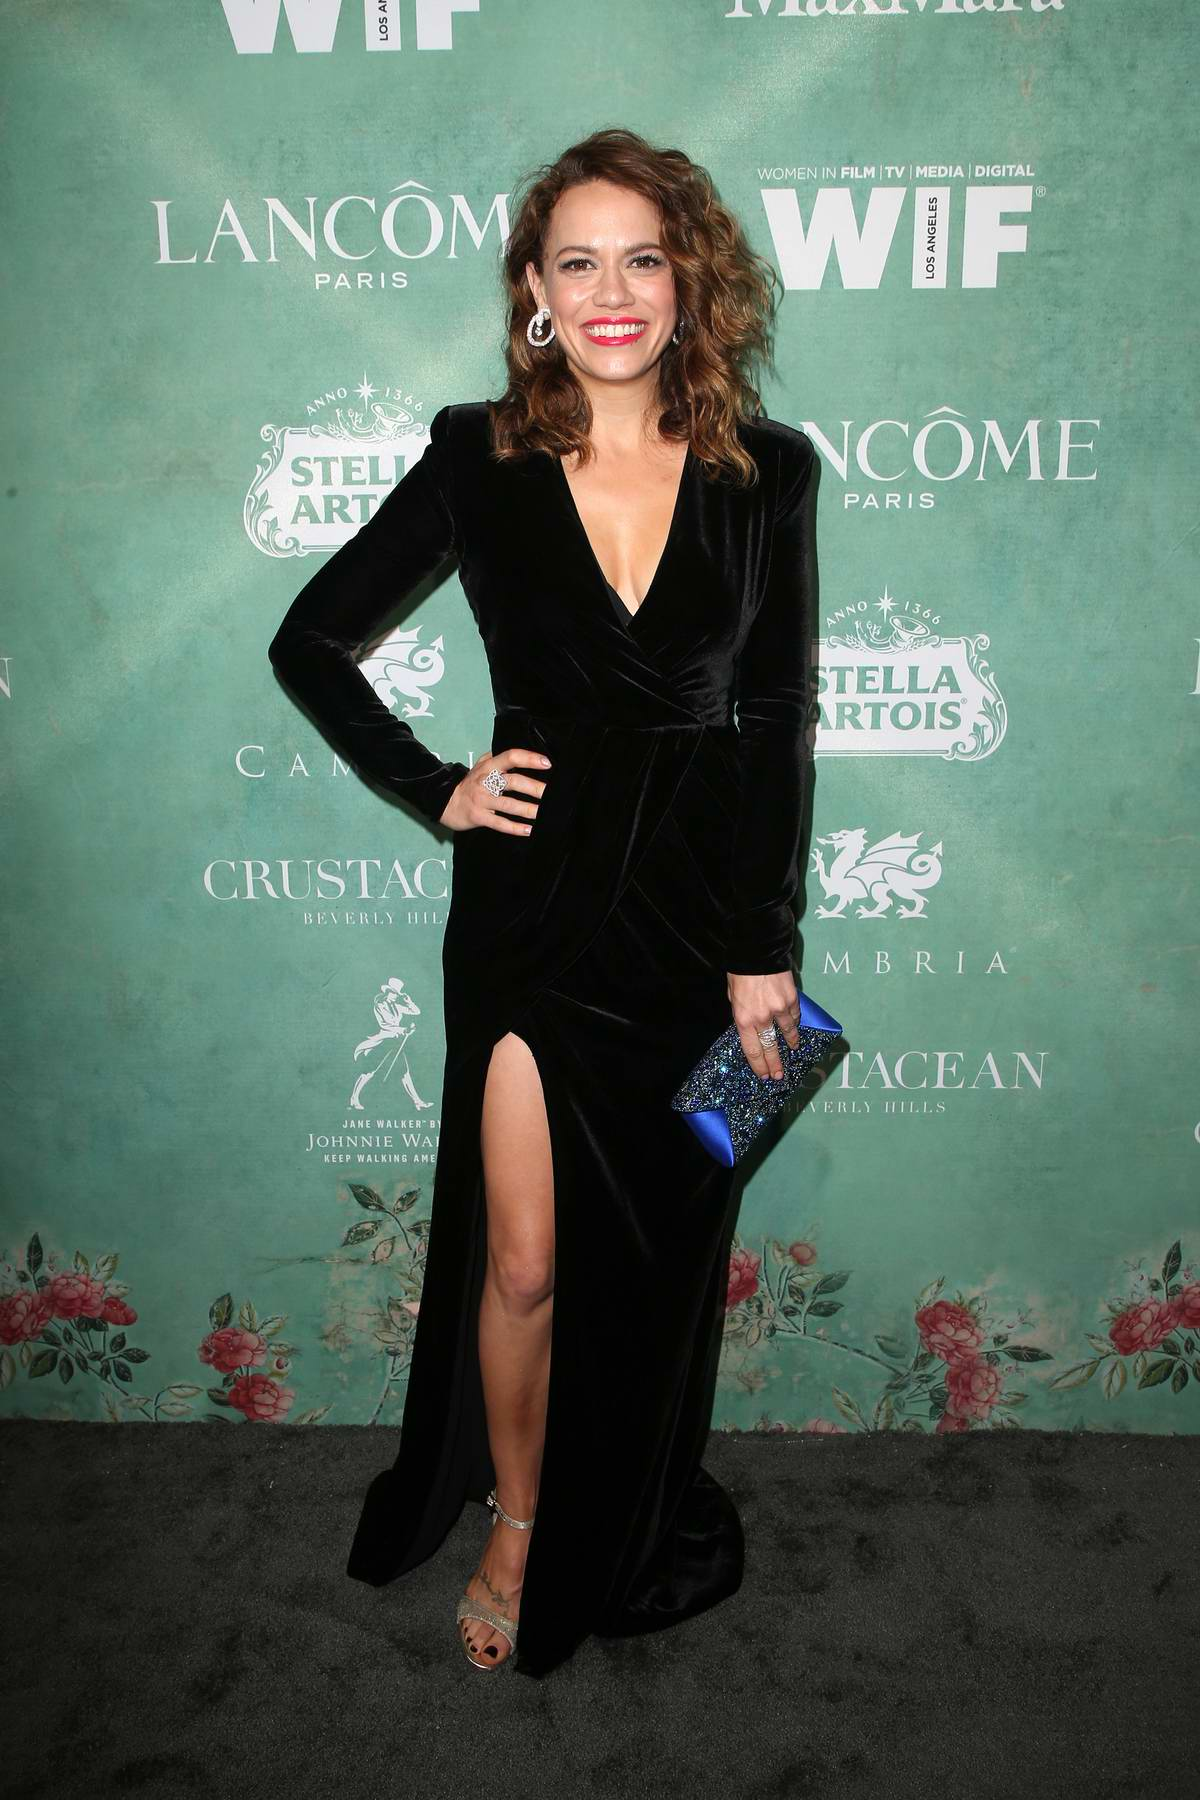 Bethany Joy Lenz attends the 11th Annual Women In Film Pre-Oscar Cocktail Party at Crustacean in Beverly Hills, Los Angeles